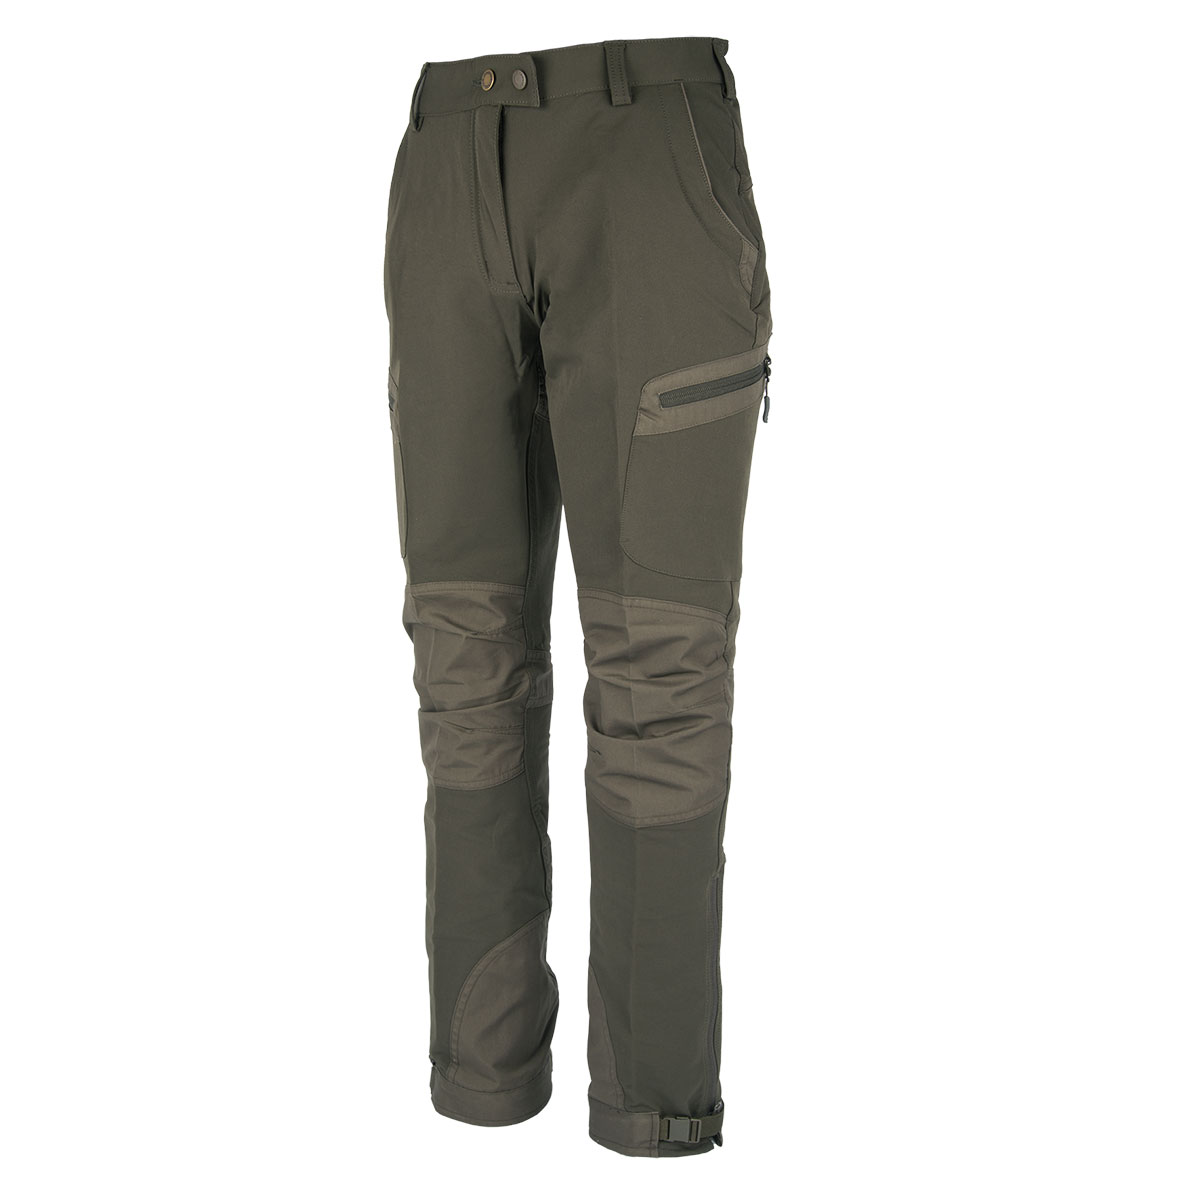 Pinewood Damenhose Wildmark Stretch Moosgrün/Dunkeloliv im Pareyshop